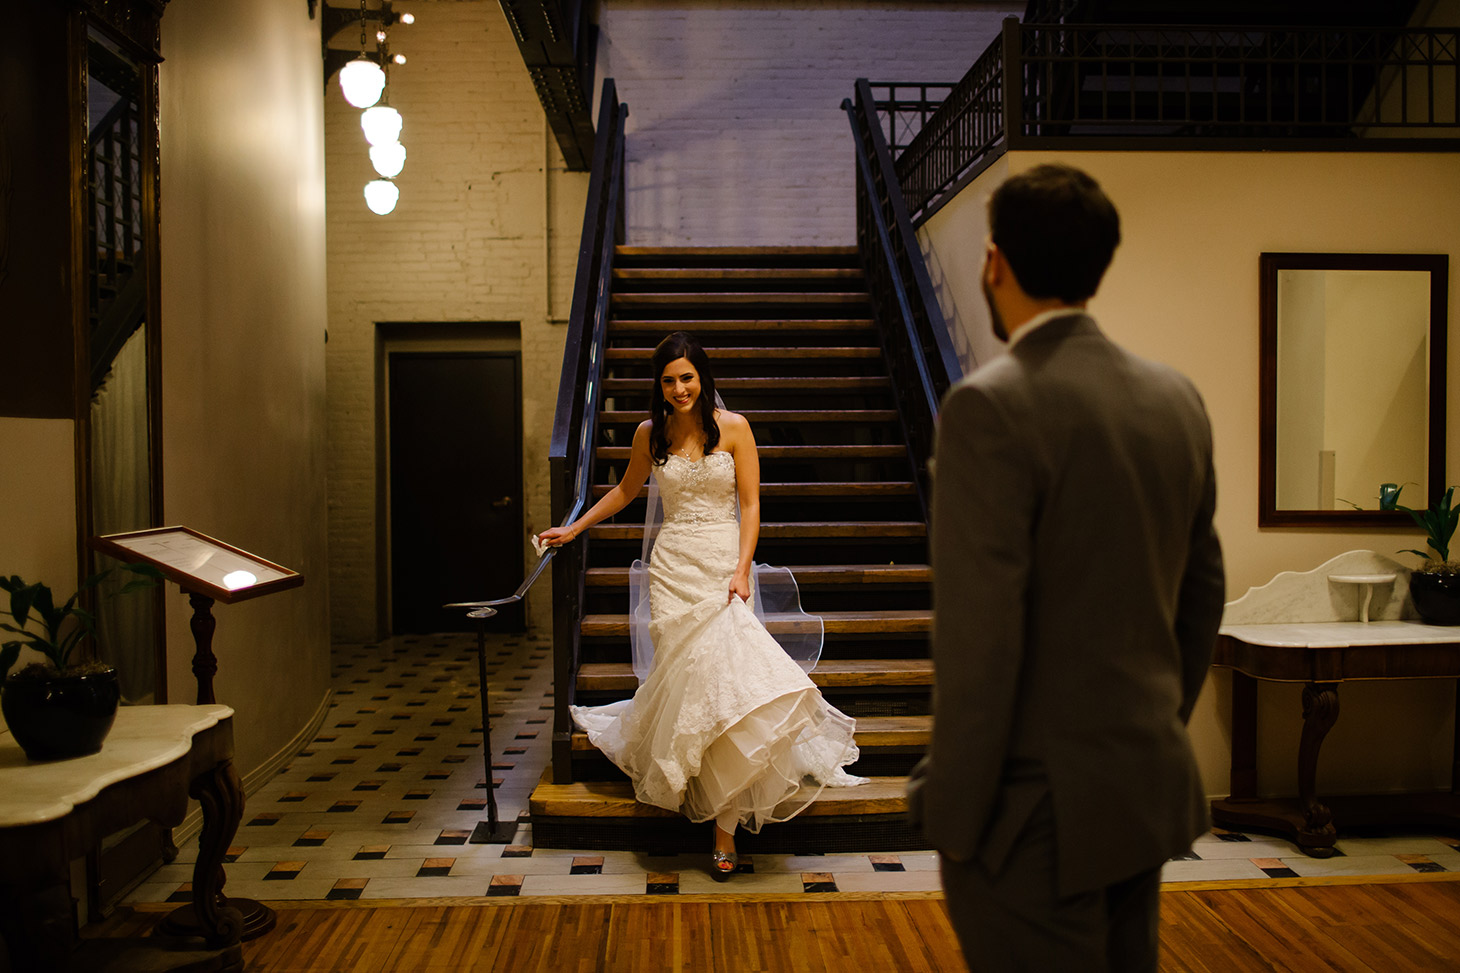 Megan-Newton-Photography-Best-Wedding-Photos-2015-306